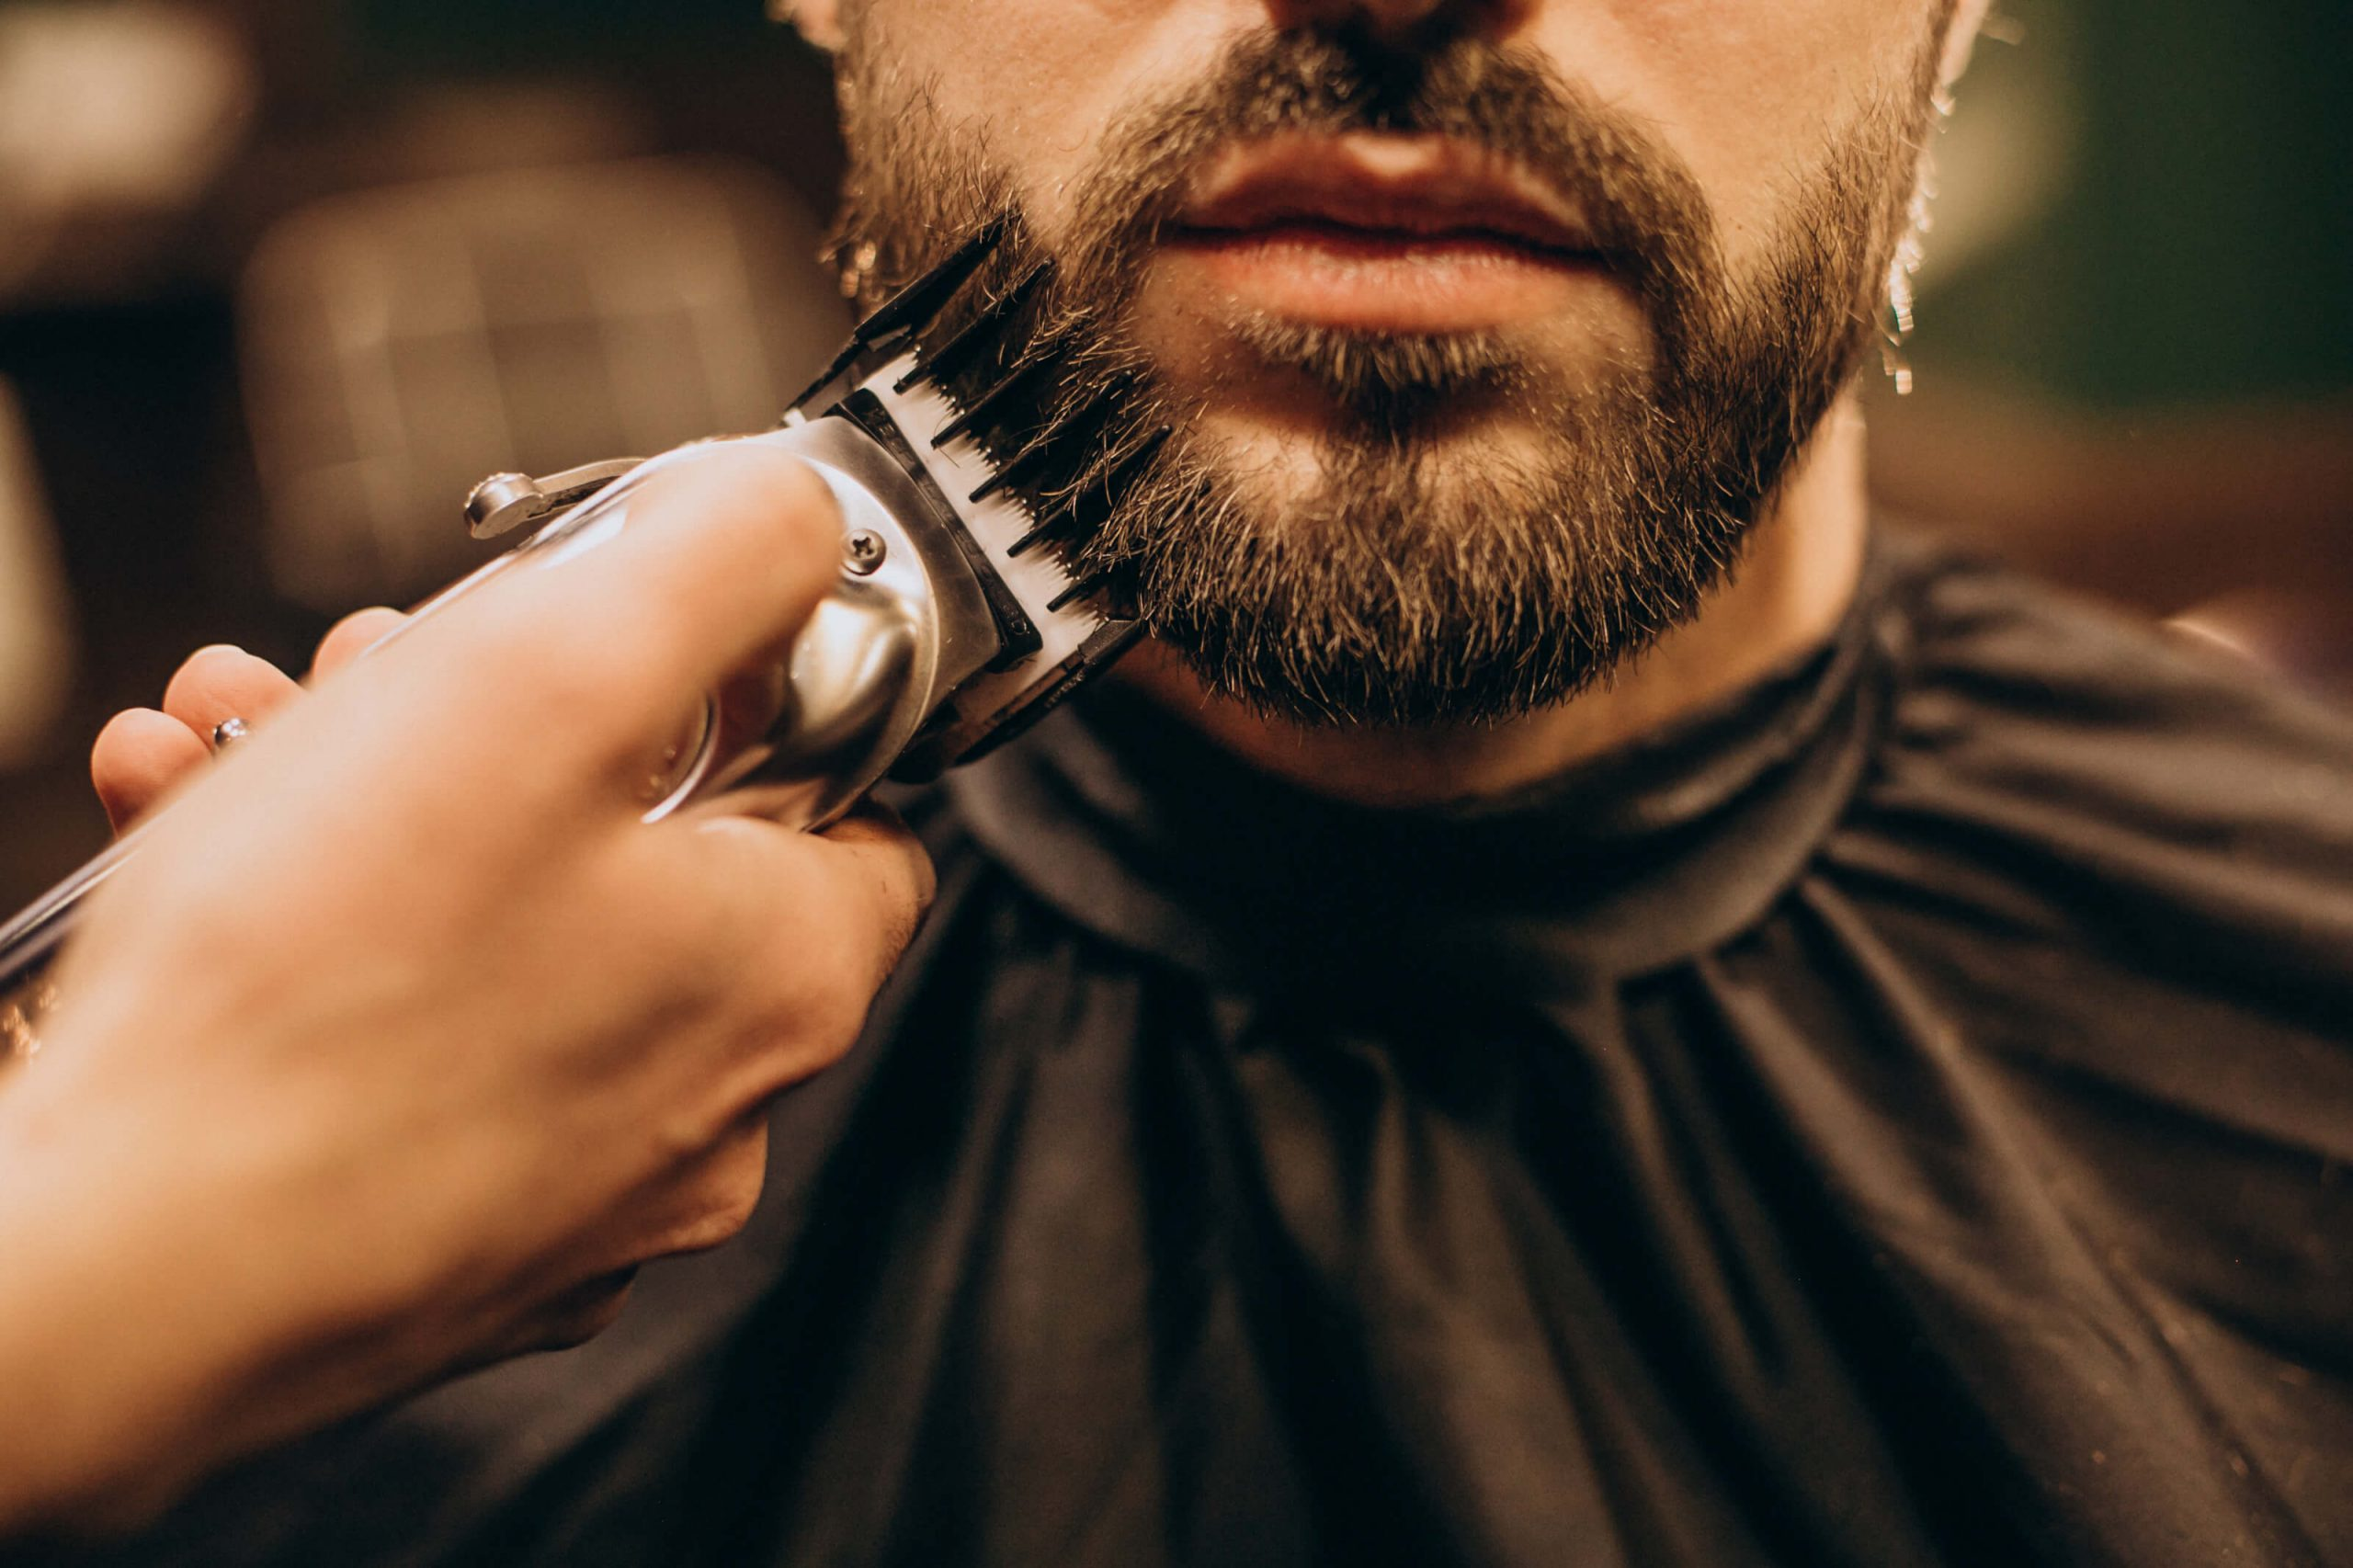 Rebel Barber Shop the place to take care of your beard